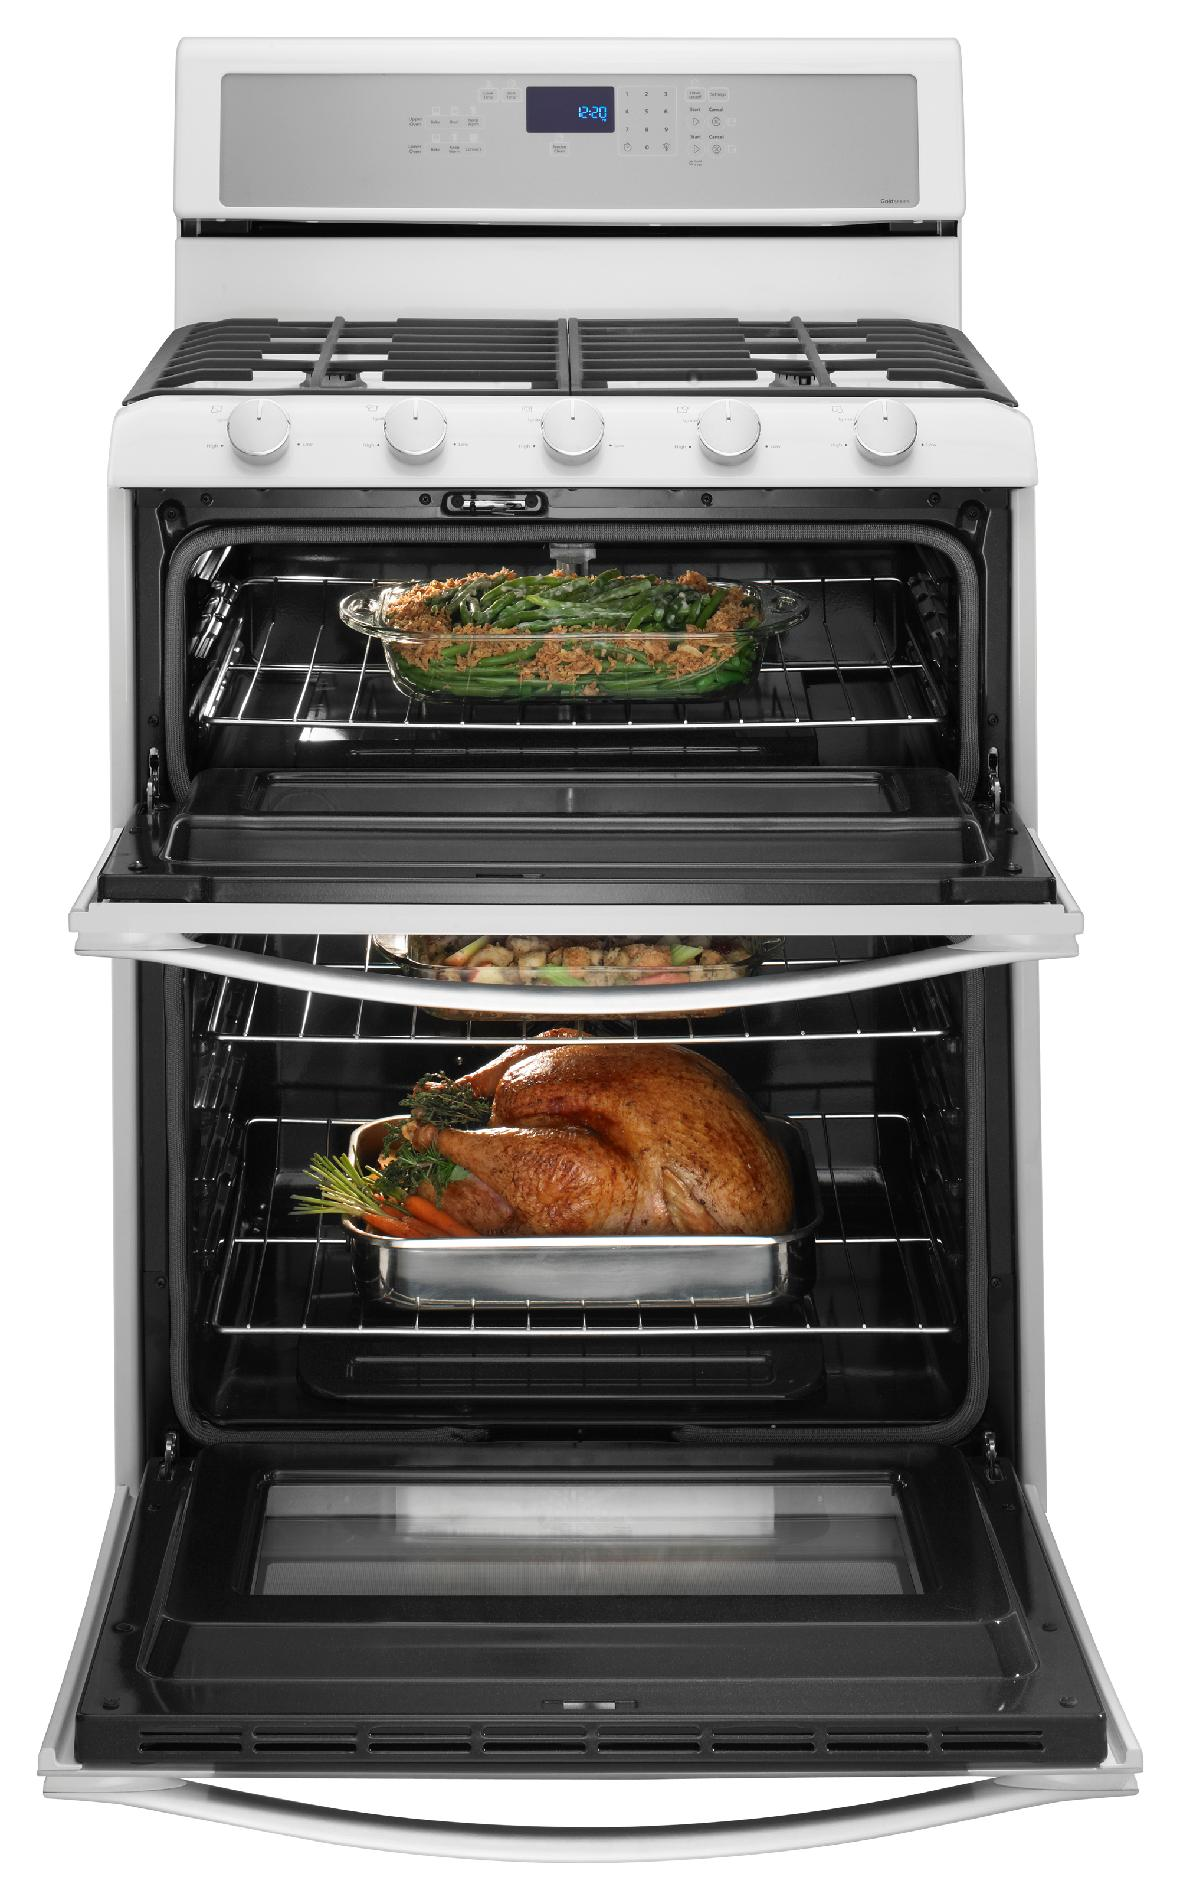 Whirlpool WGG755S0BH 3.9 cu. ft. Gas Range w/ TimeSavor™ Convection Cooking - White Ice